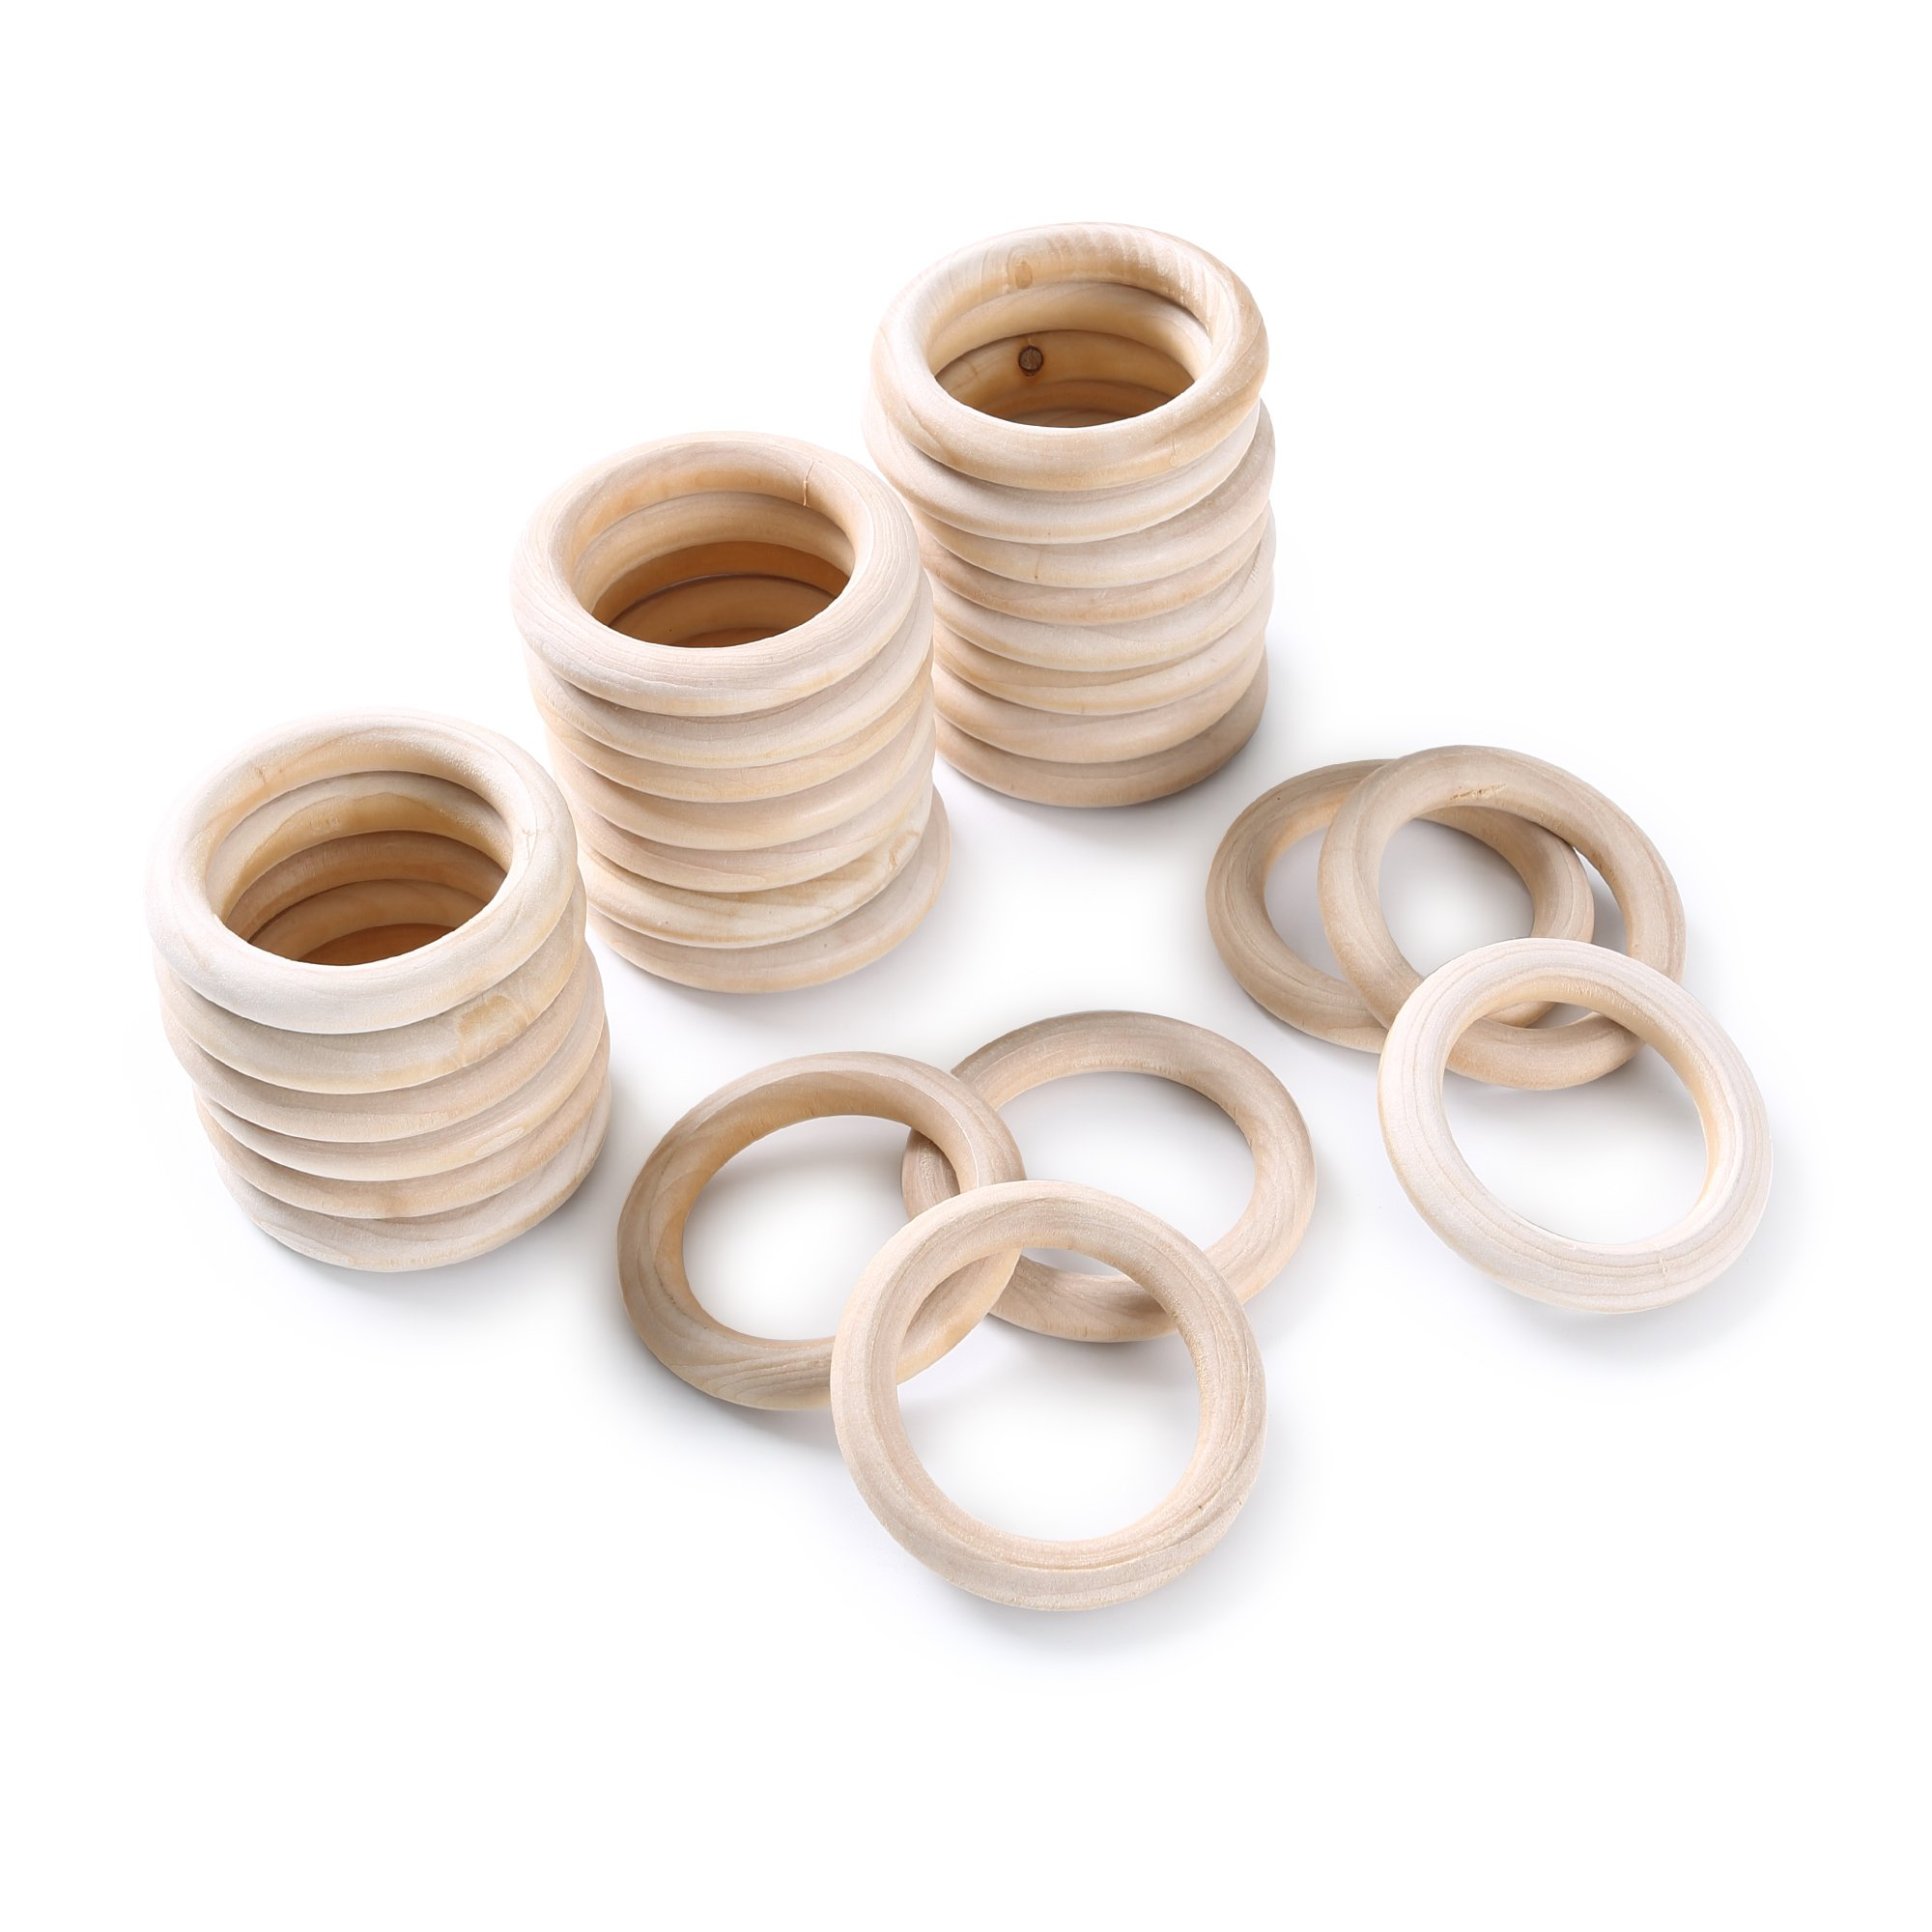 Efivs Arts 30pcs Natural Wood Rings for Craft, Ring Pendant and Connectors Jewelry Making DIY Projects (6.5cm) by Efivs Arts